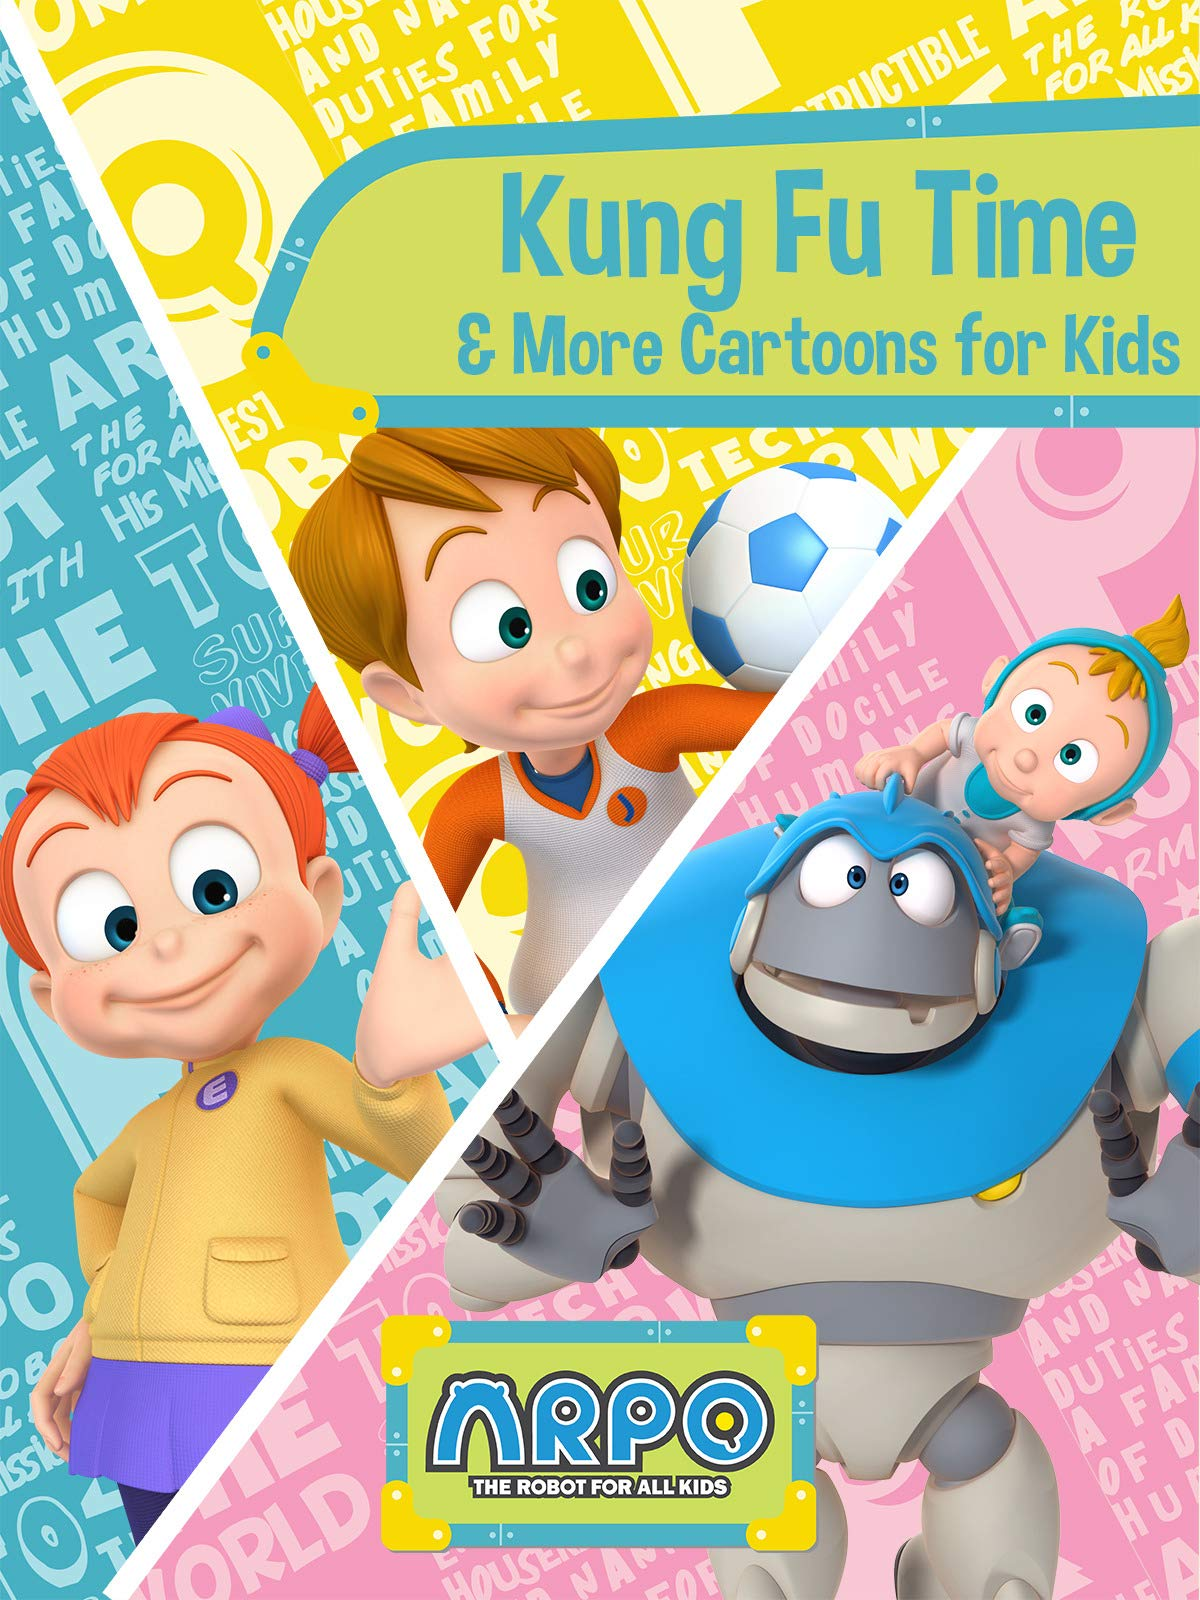 Arpo the Robot for All Kids - Kung Fu Time & More Cartoons for Kids